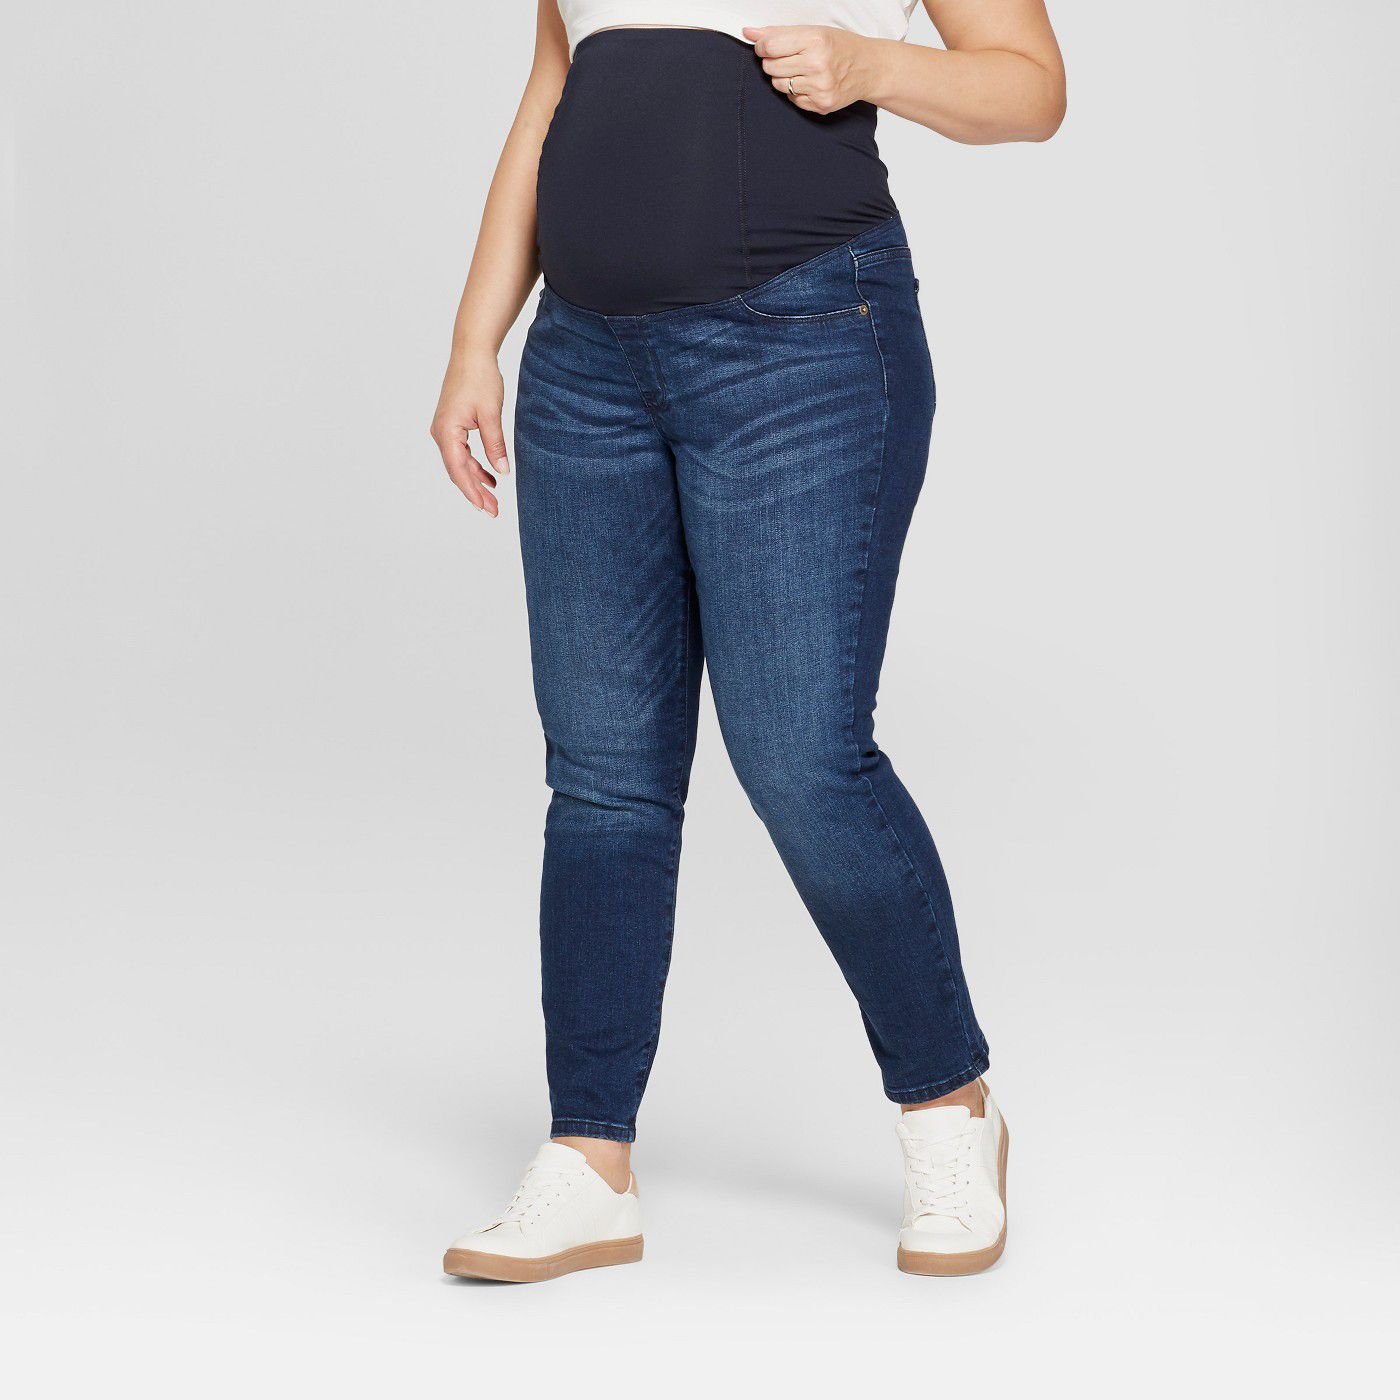 b1c7155e706d8 Best Plus-Size  Ingrid   Isabel Maternity Plus Size Crossover Panel Skinny  Jeans